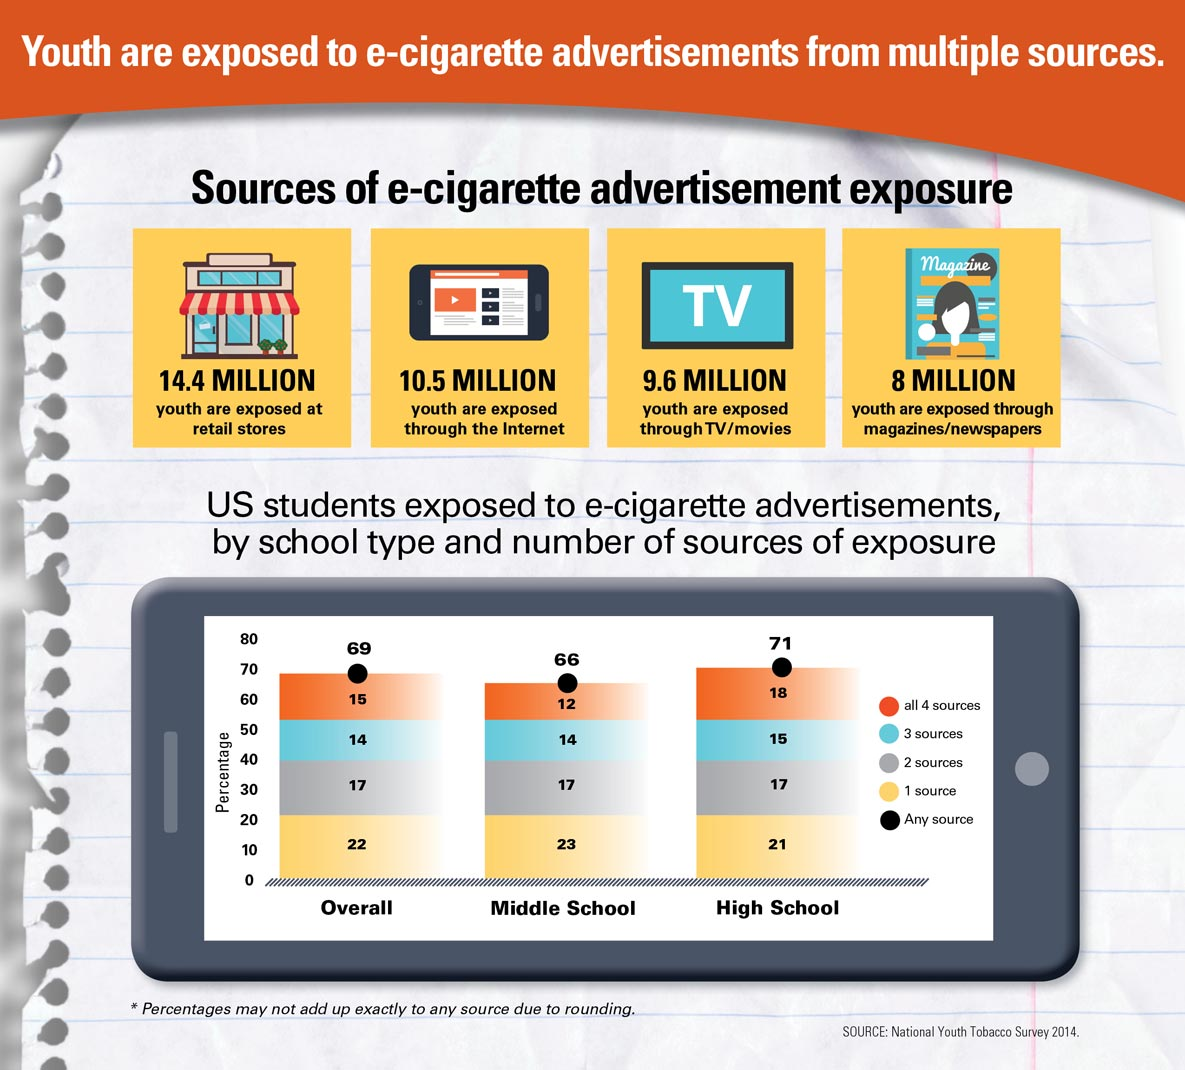 Graphic: Youth are exposed to e-cigarette advertisements from multiple sources.